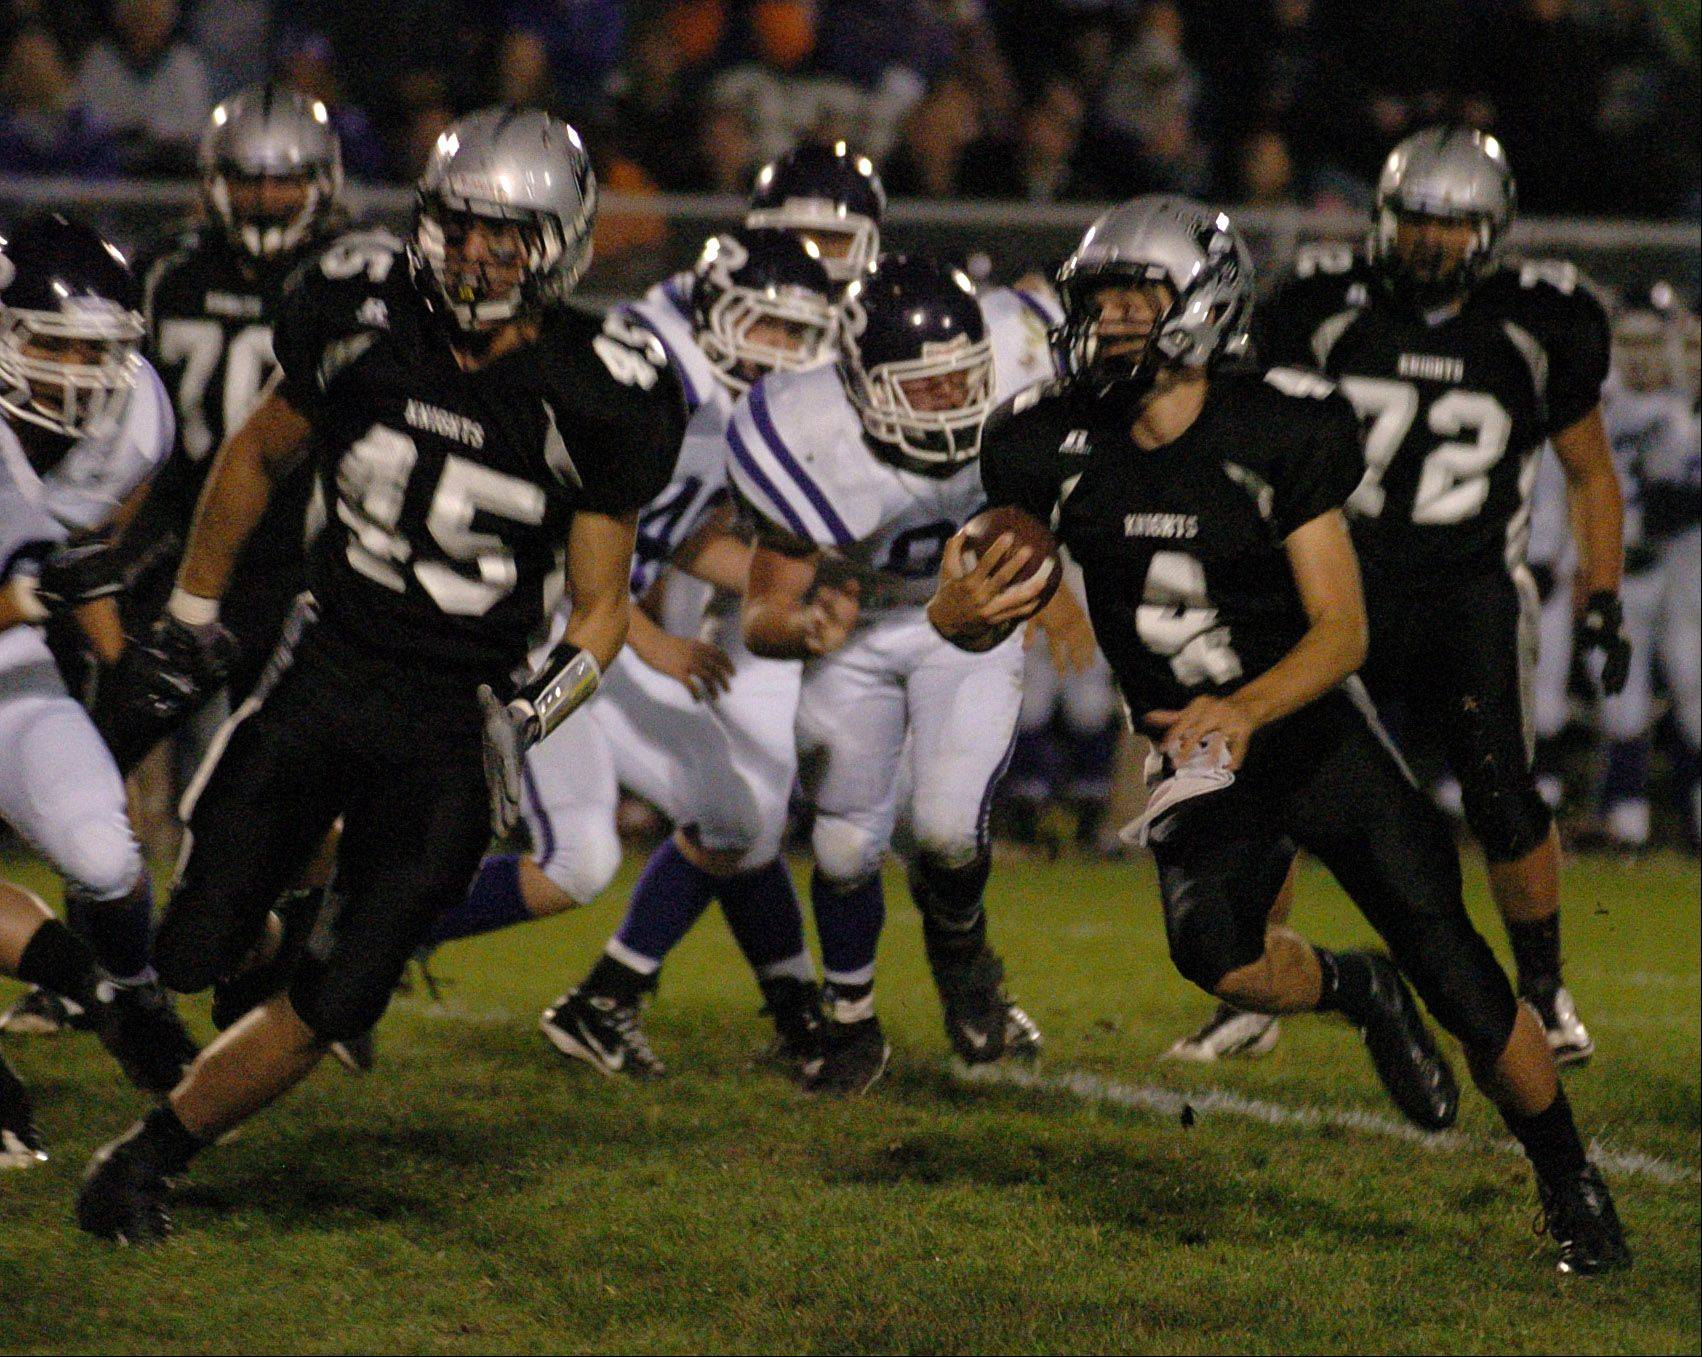 Kaneland quarterback Drew David escapes Rochelle's defense during Fridays game at Kaneland High School